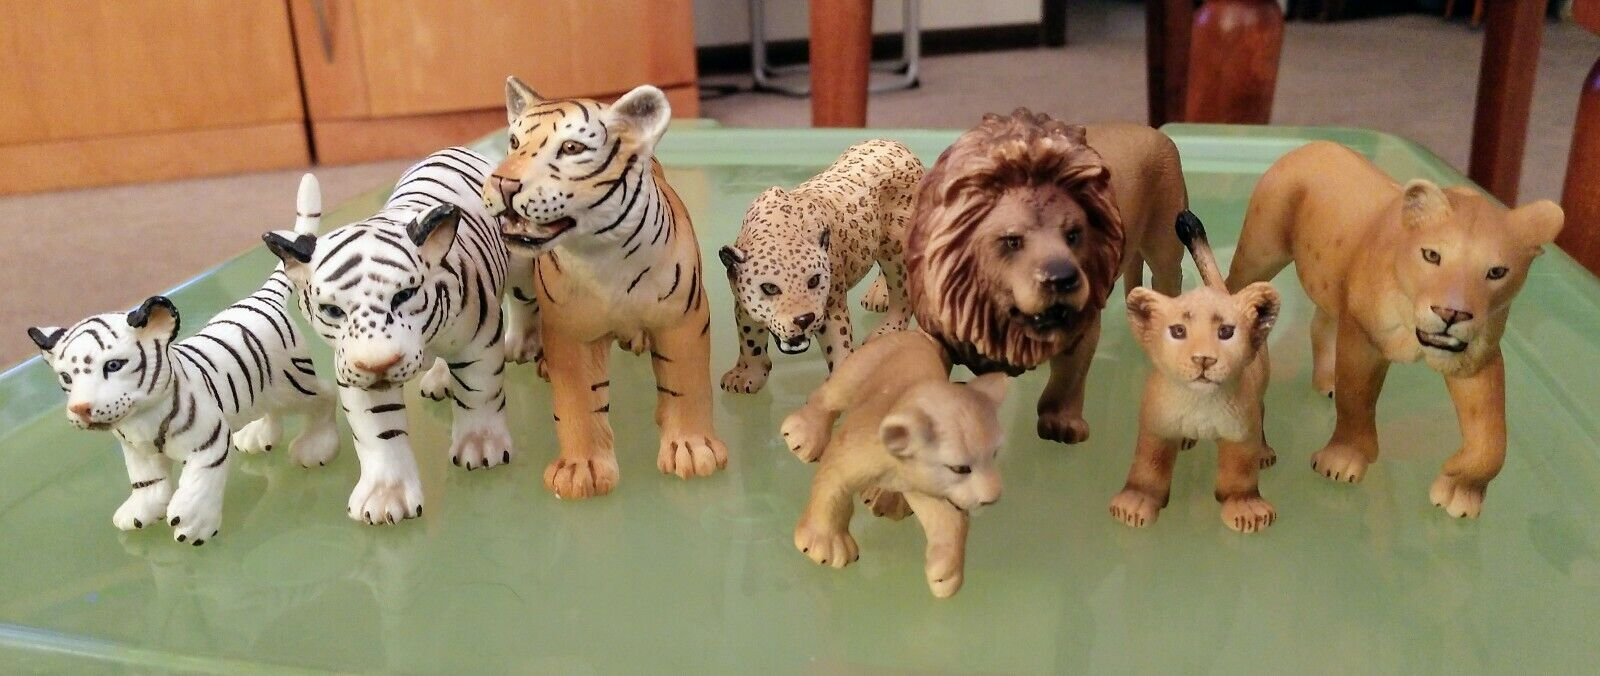 Schleich animal figure lot -- 8 animals -- RETIrot